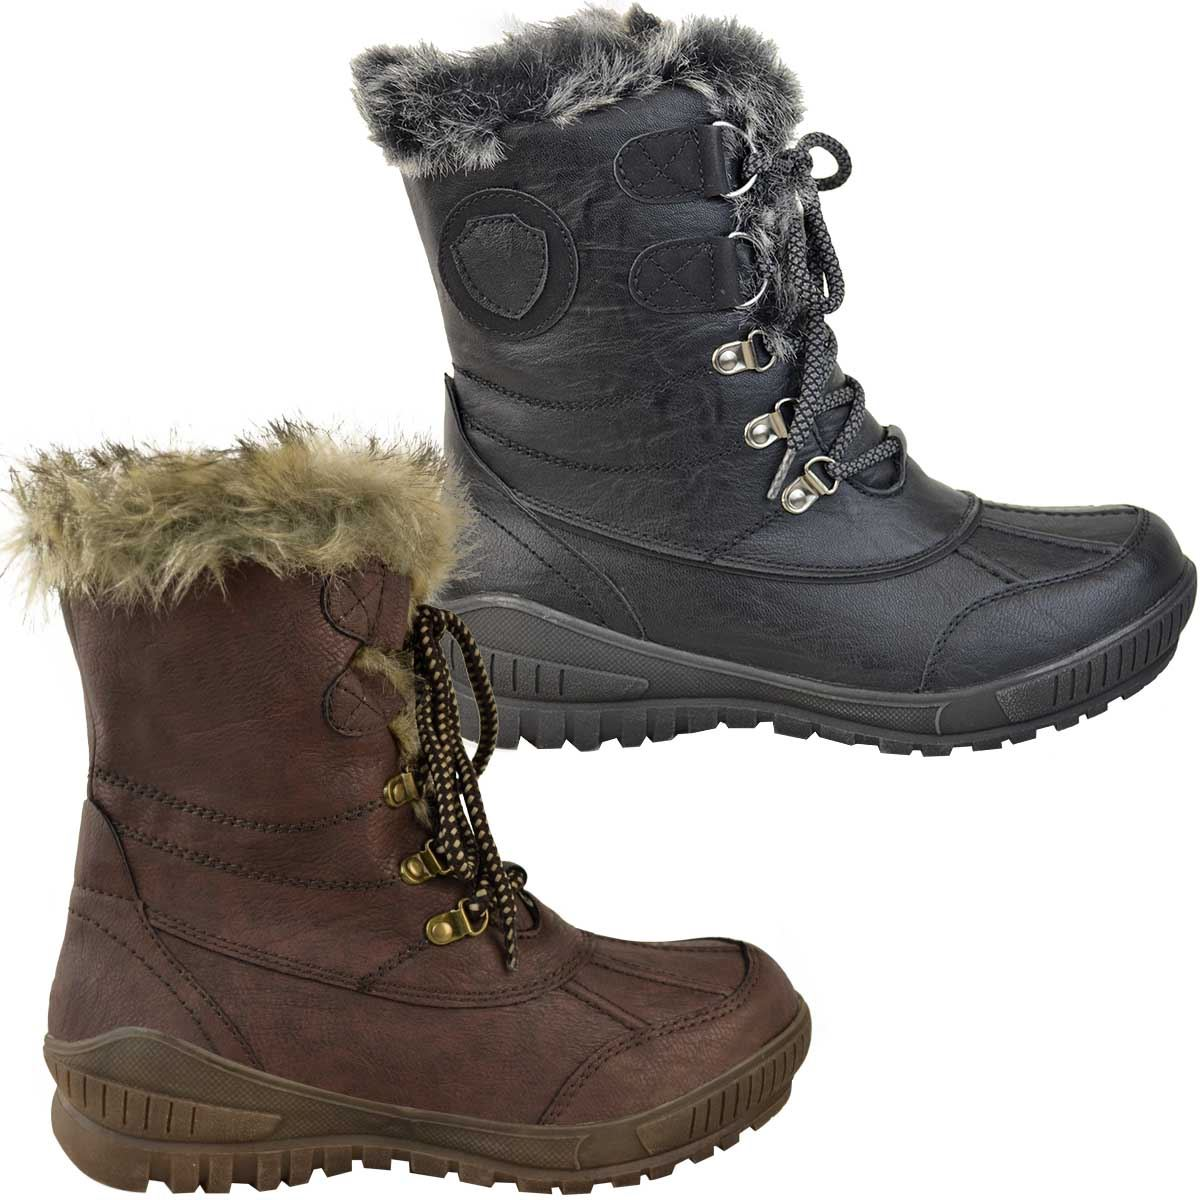 Womens Ladies Snow Ski Ankle Boots Winter Rain Thermal Fully Fur Lined UK Size